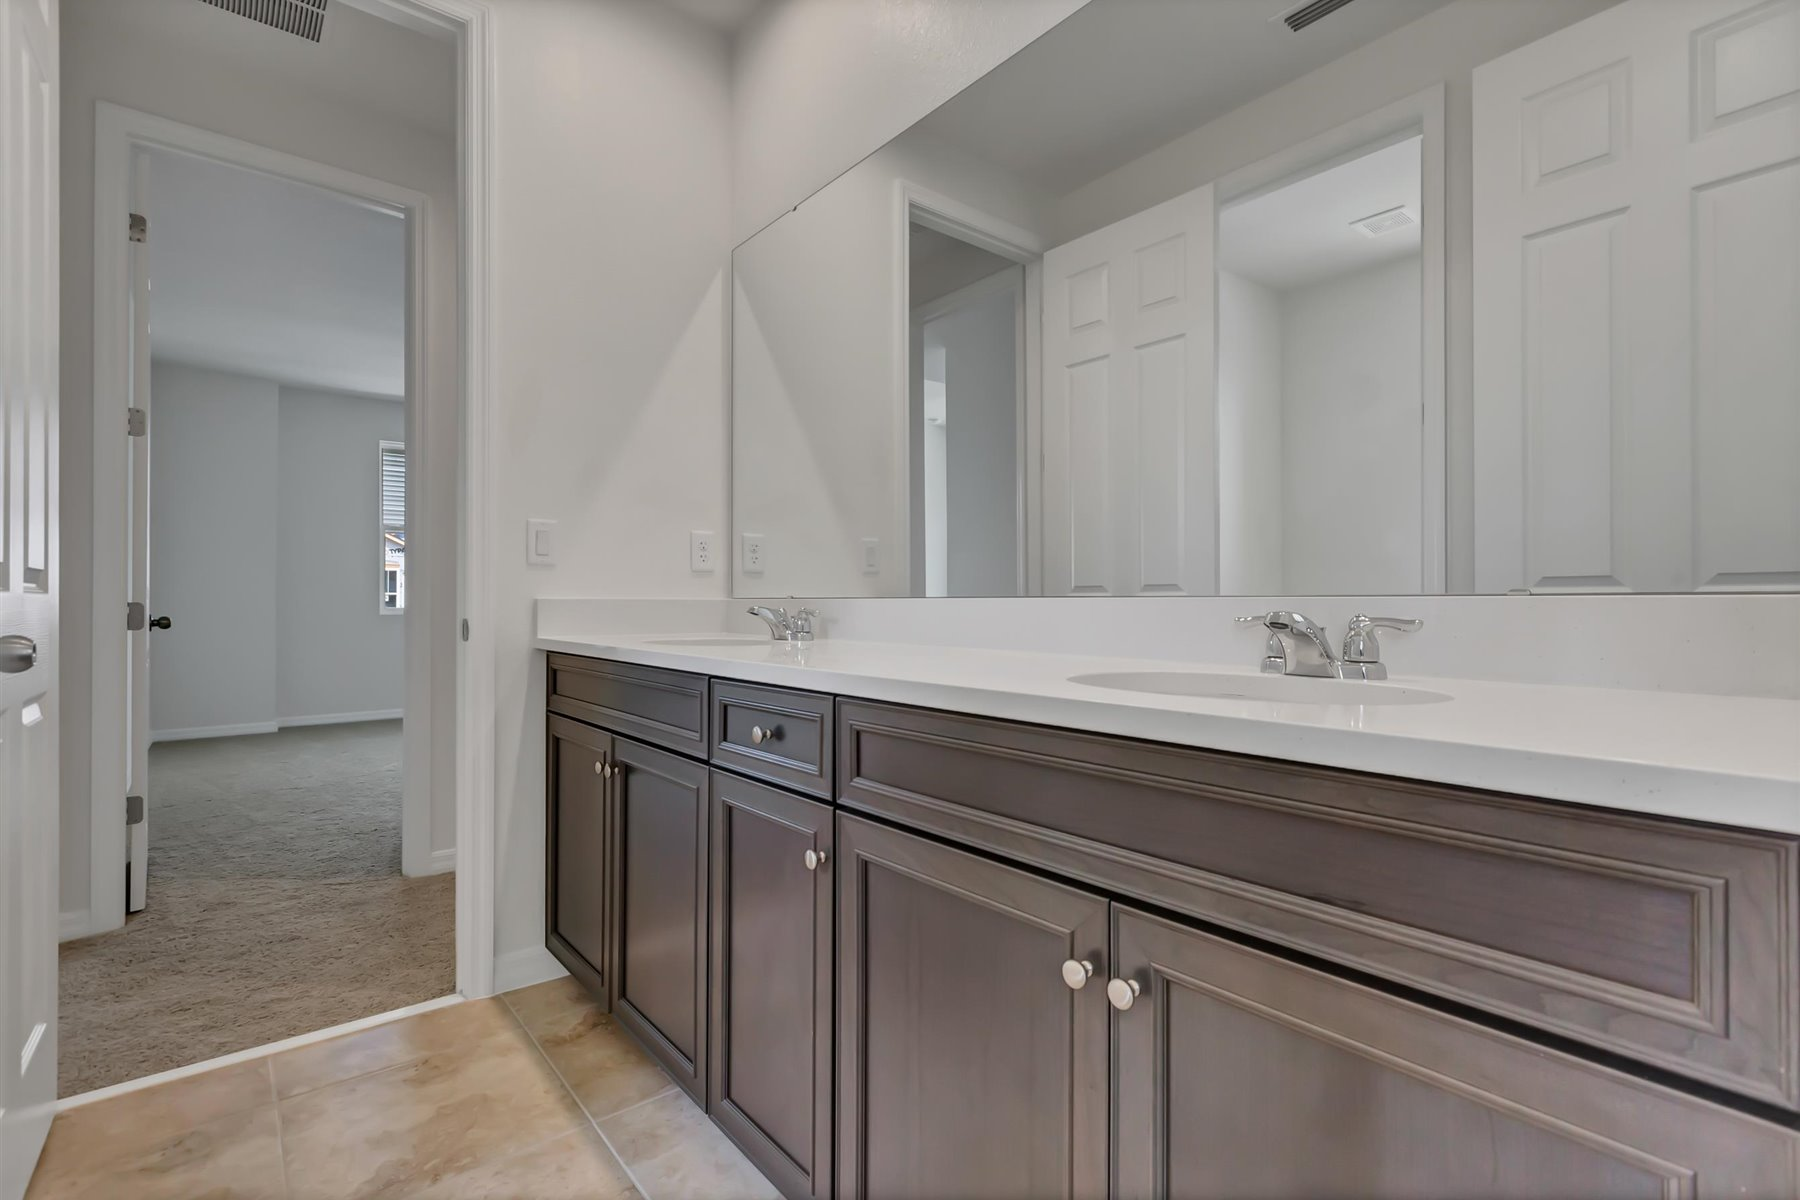 Winthrop Plan Bath at Meridian Parks in Orlando Florida by Mattamy Homes